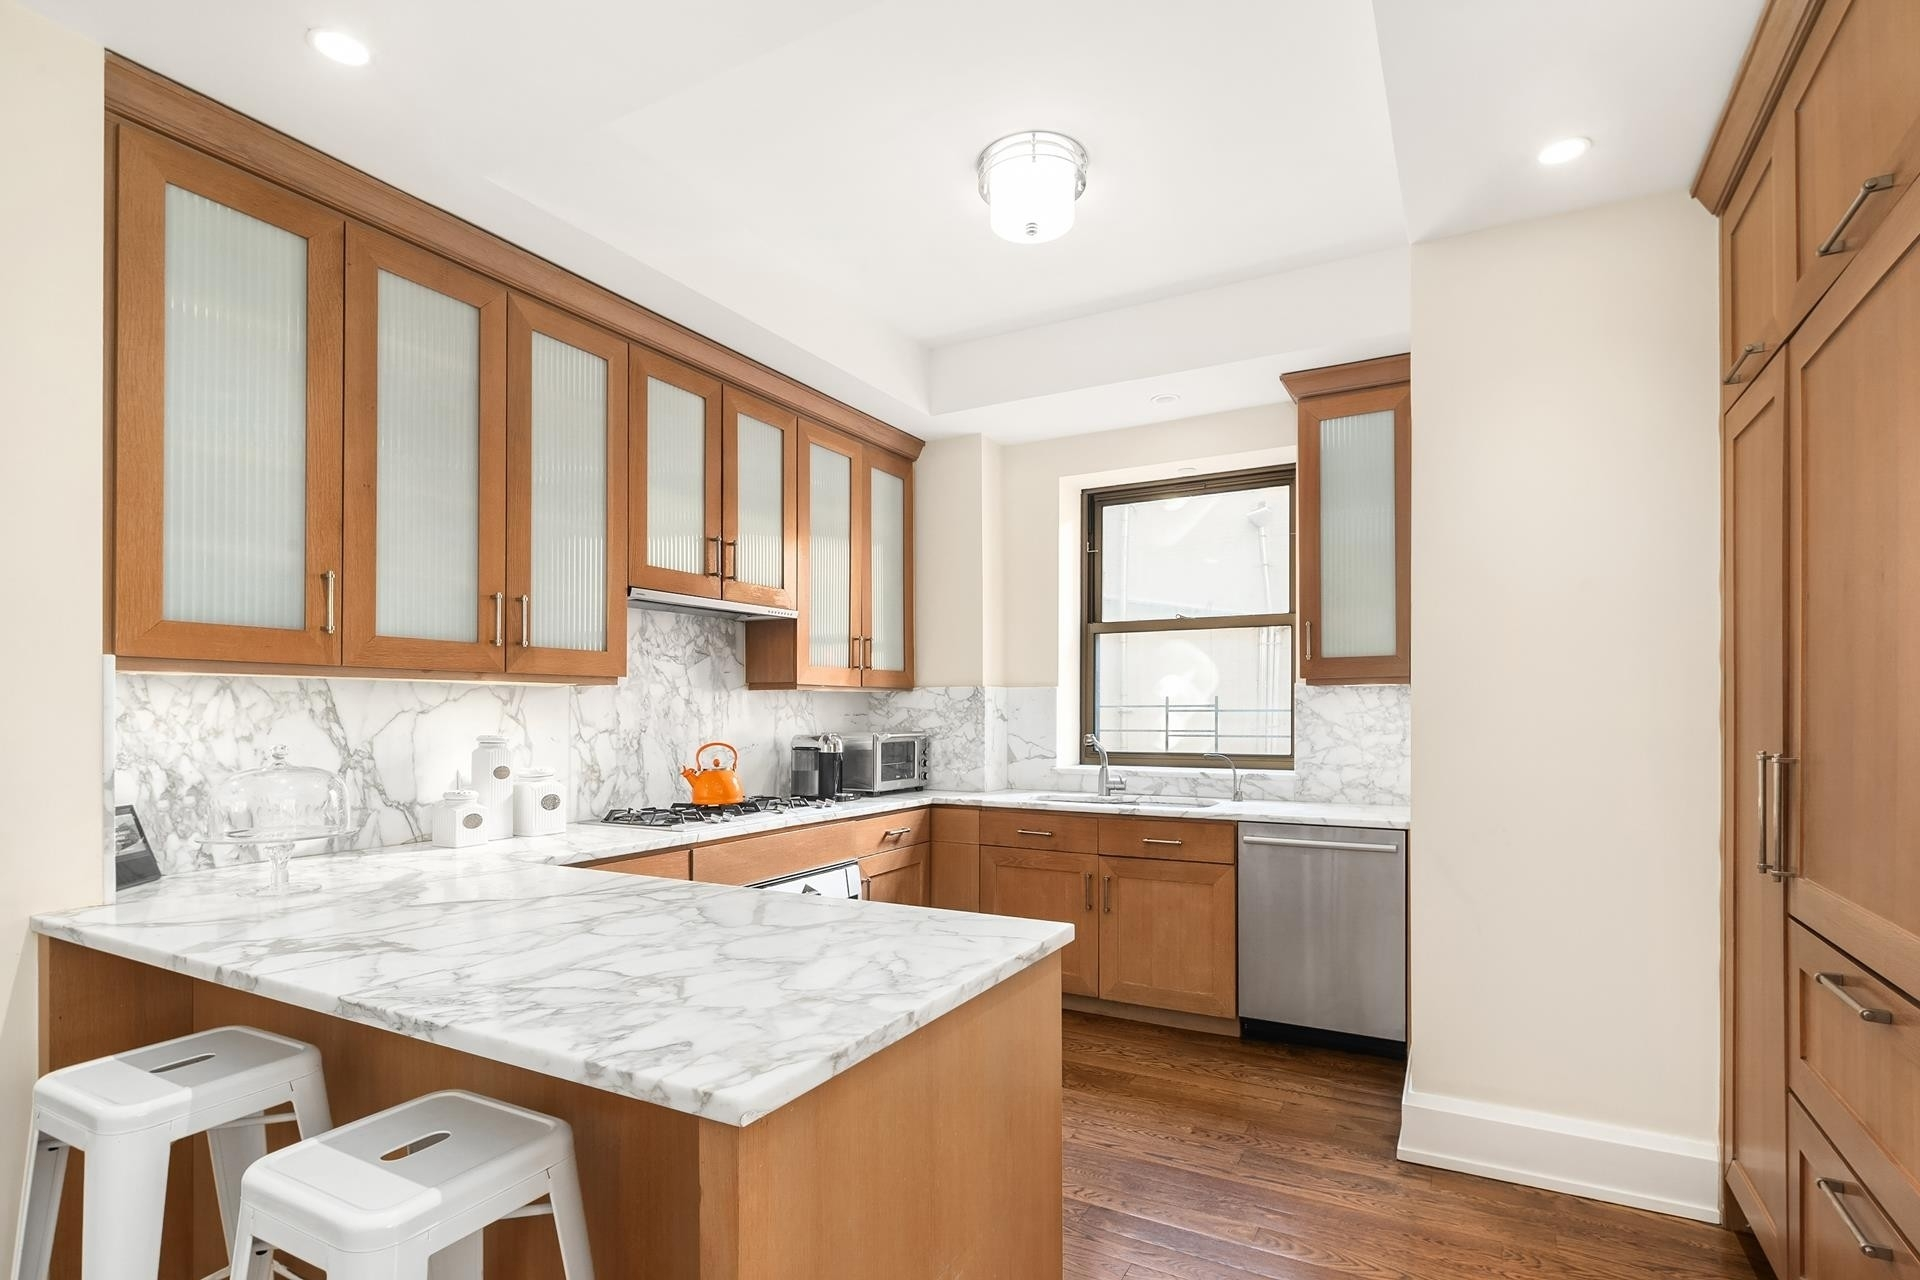 3. Condominiums for Sale at The Parkwood, 31 E 28TH ST , 9E NoMad, New York, NY 10016